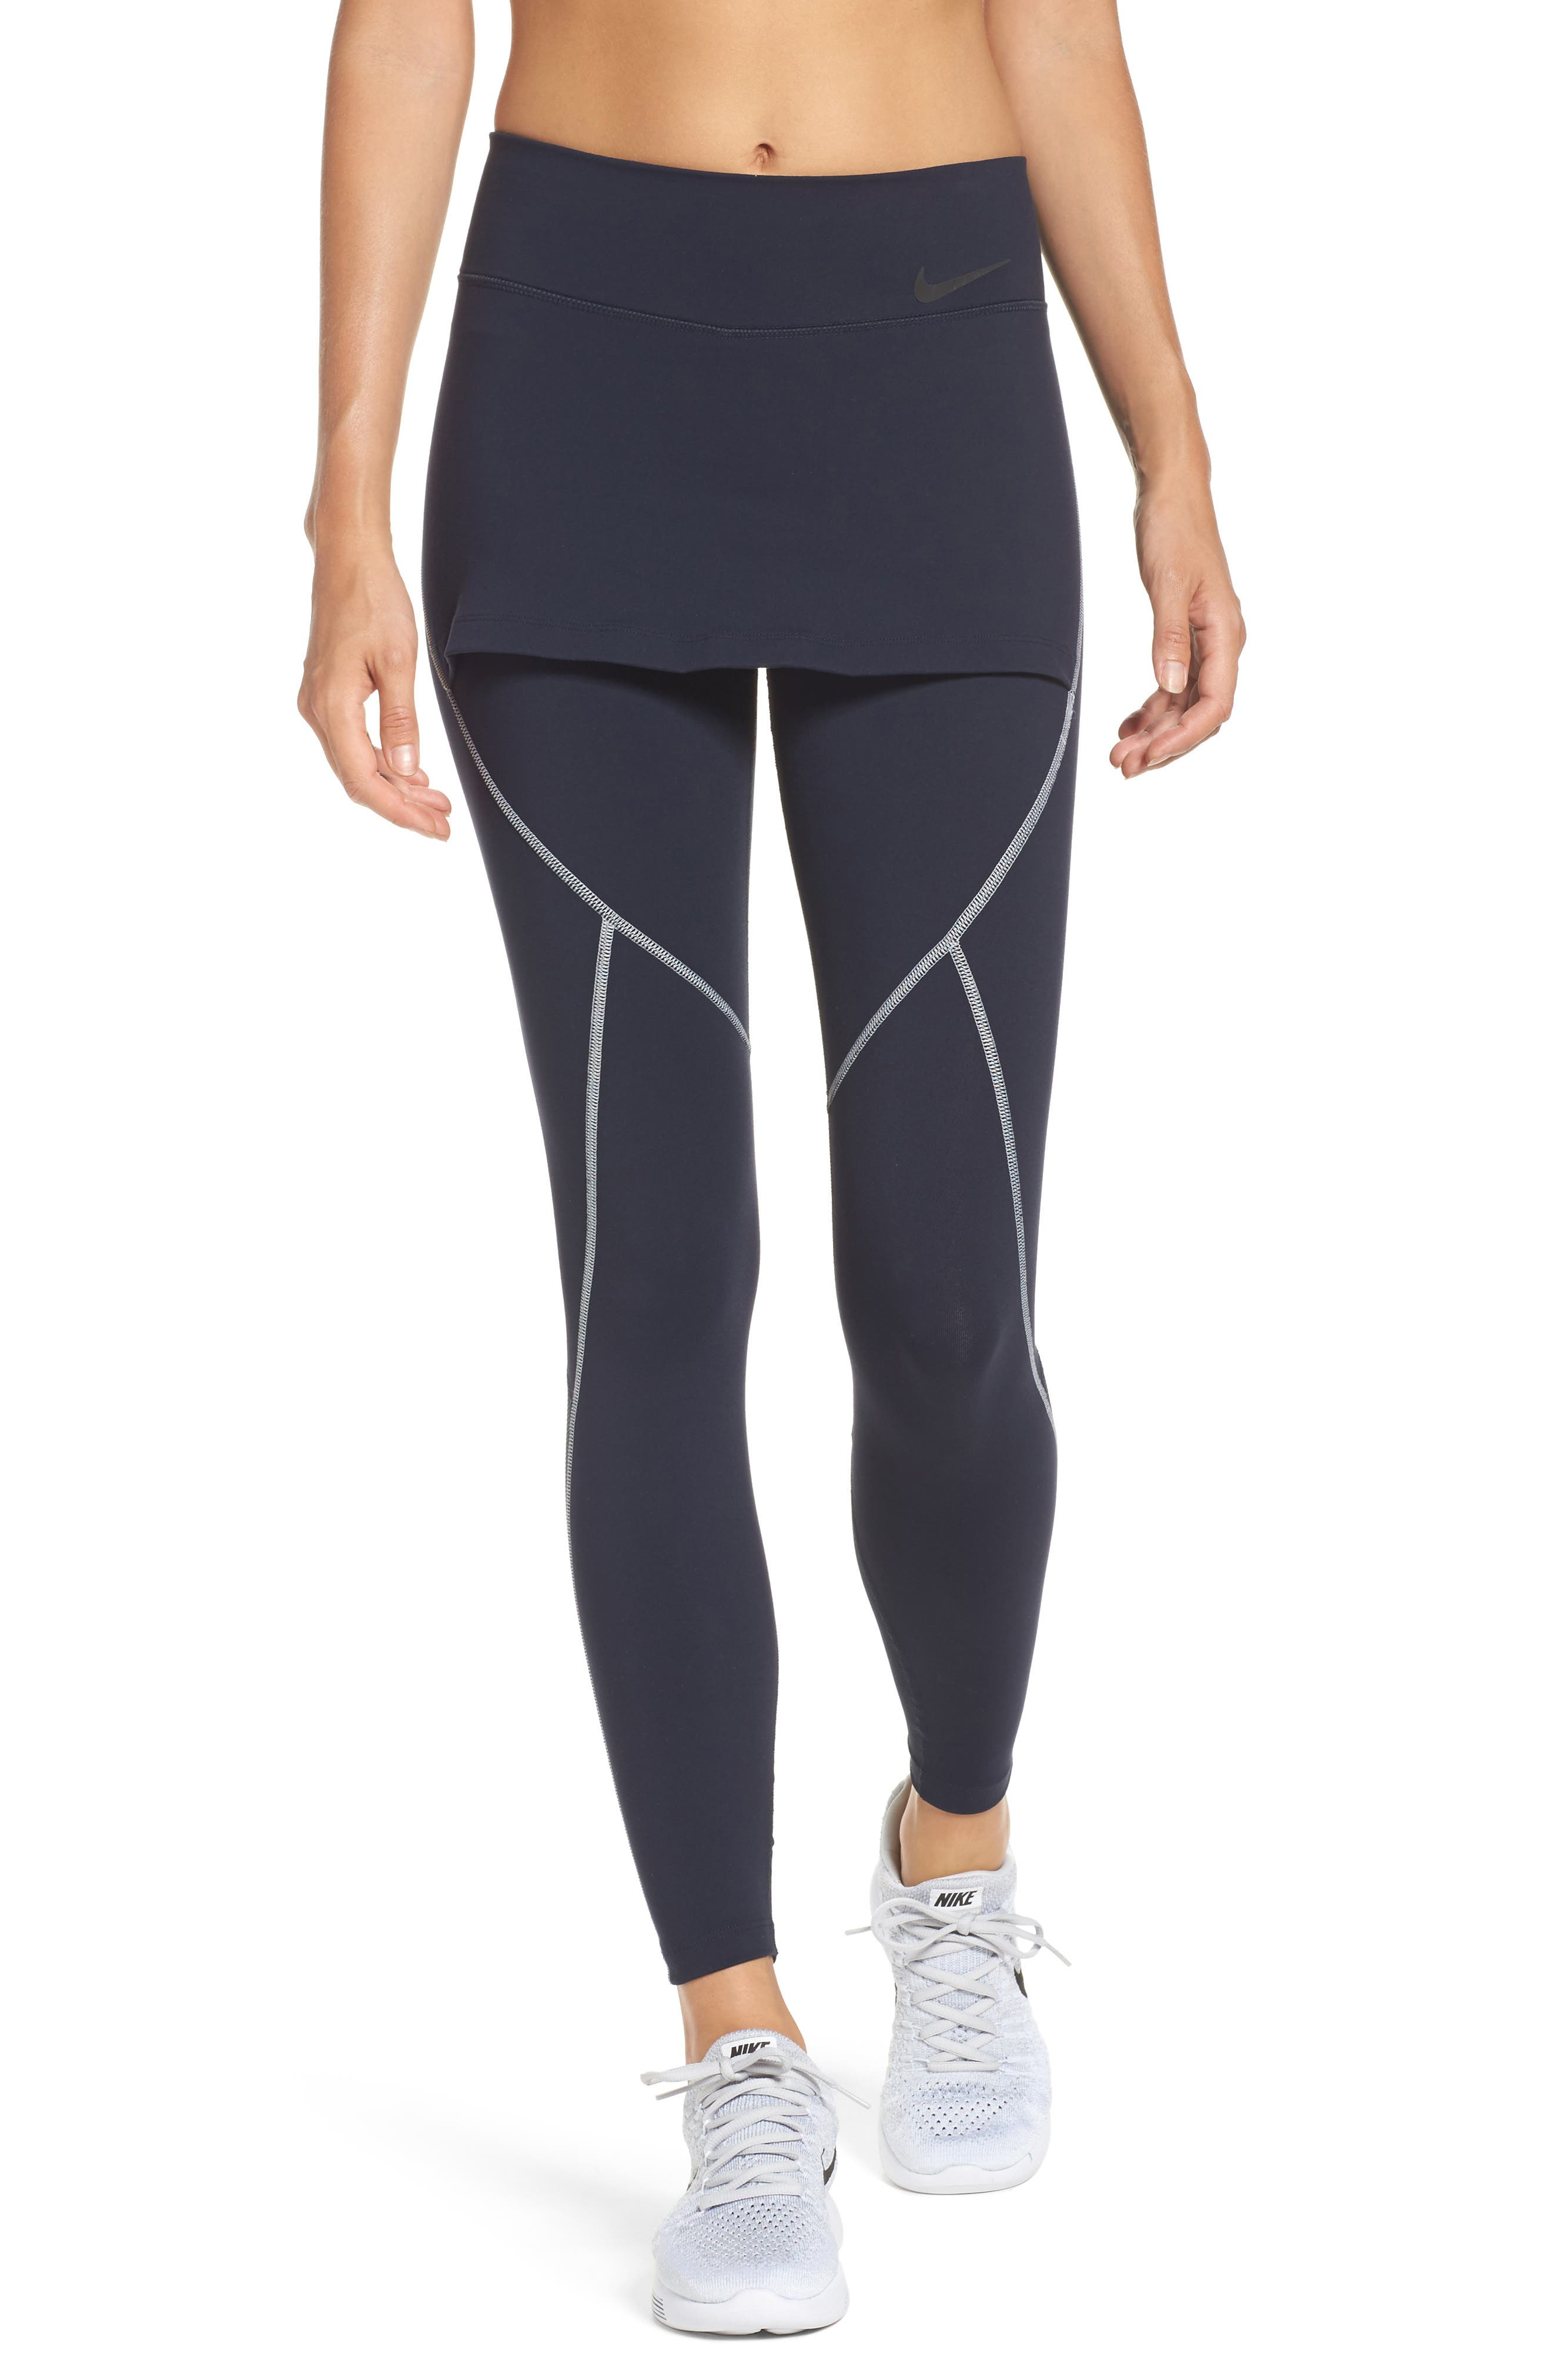 Nordstrom x Nike Energy 2-In-1 Skirted Tights